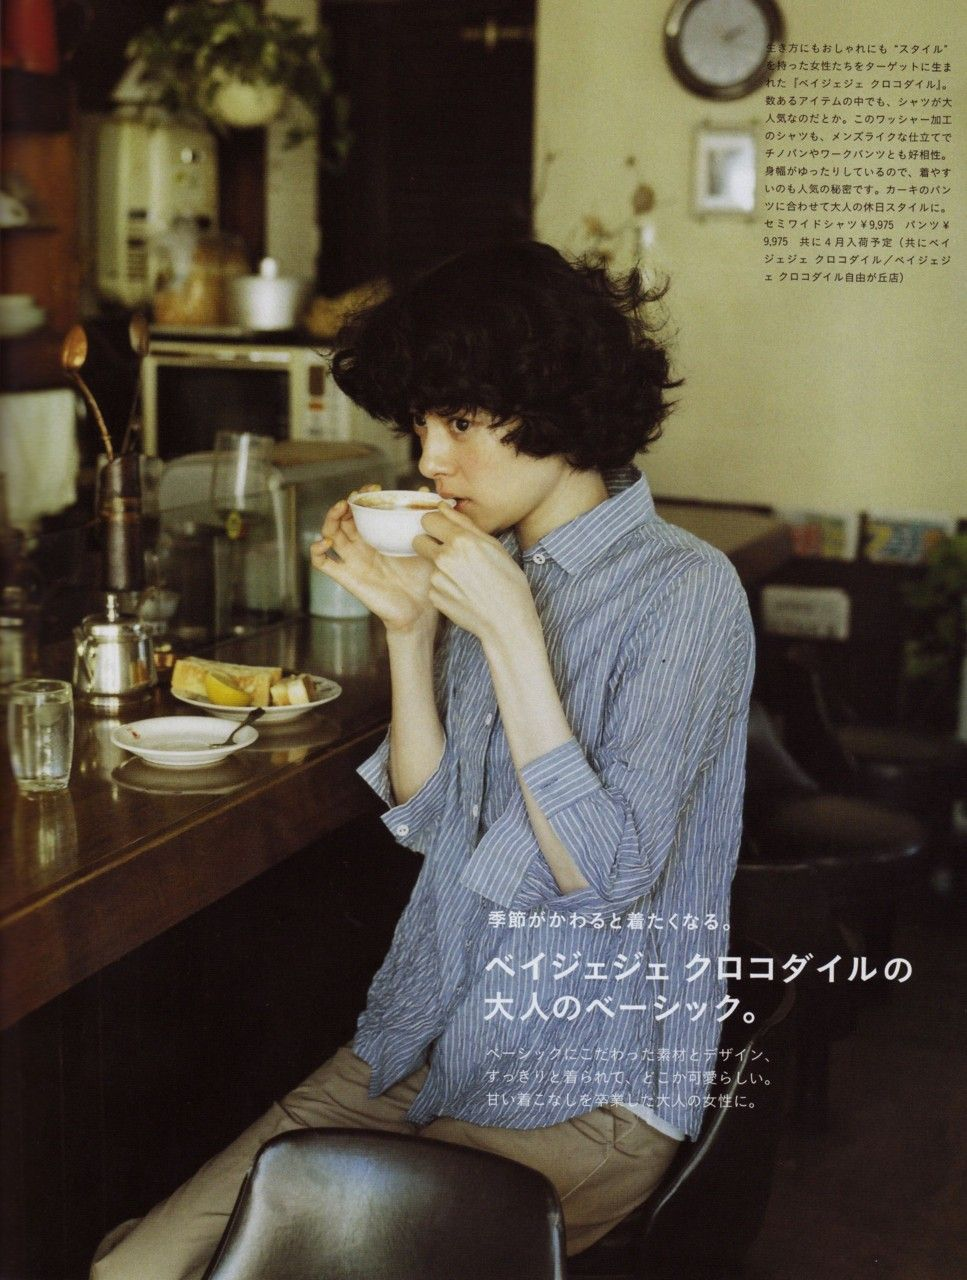 Pin by 닐스 on 인물들 pinterest cafes coffee and short hair